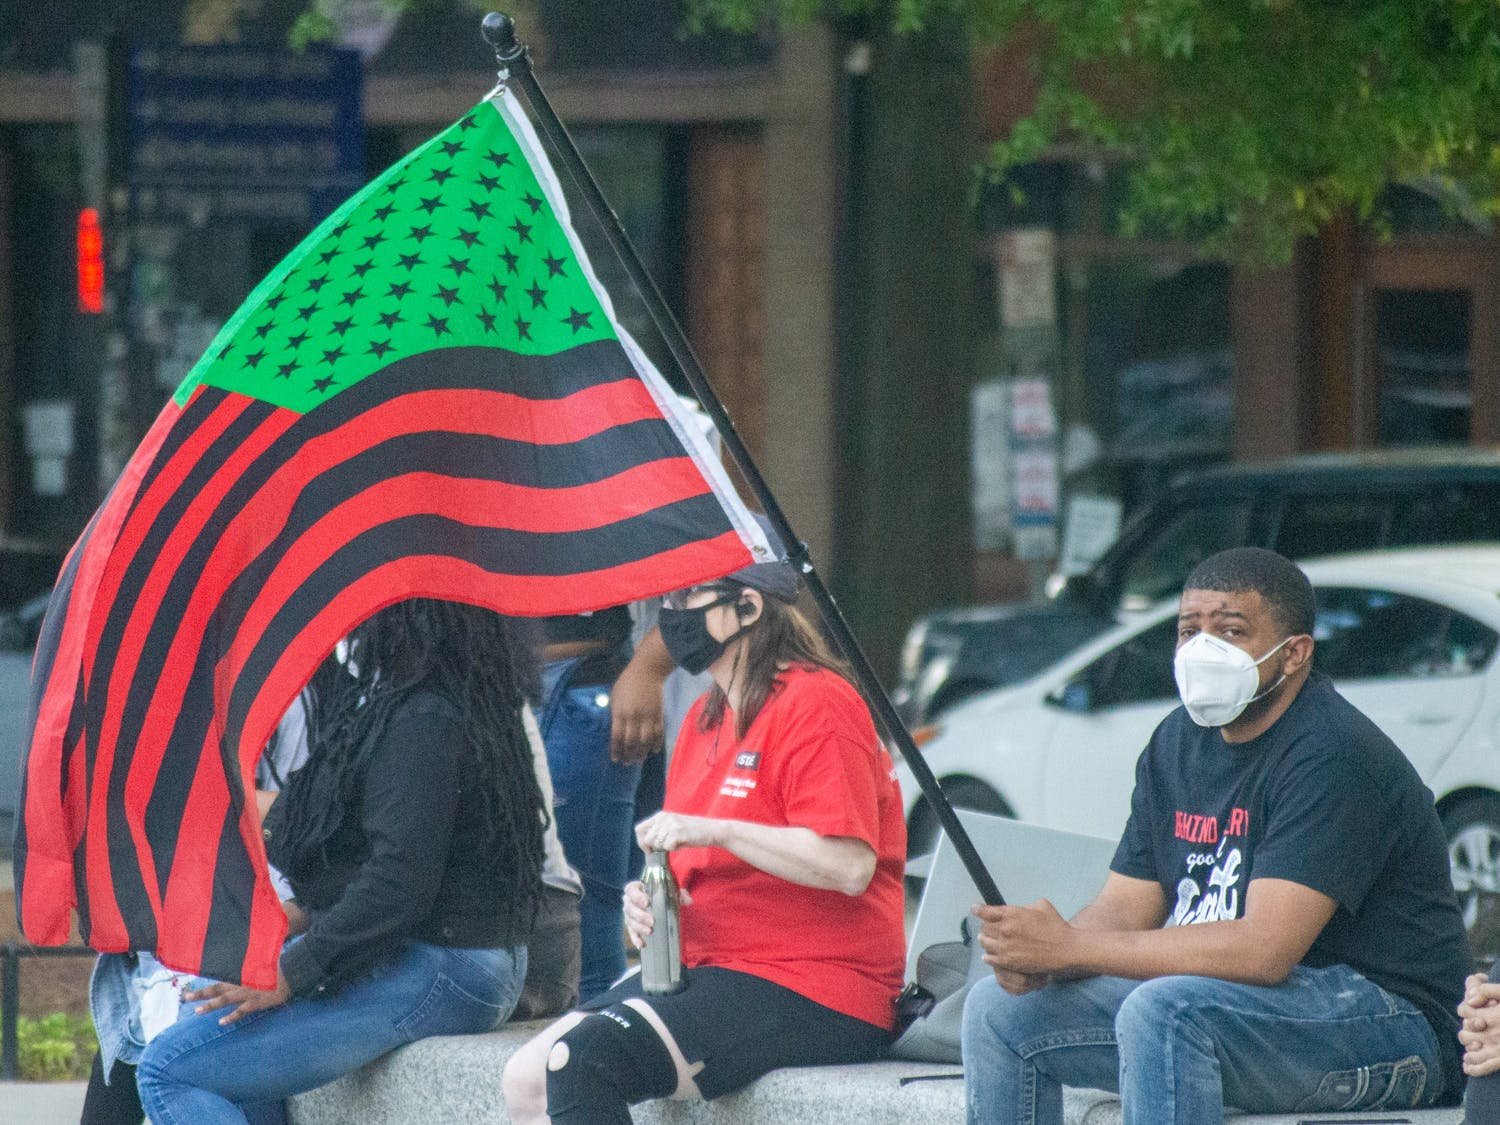 An attendee of a community organized vigil in memory of Daunte Wright and Jaida Peterson holds an African-American flag. The vigil took place in Moore Square Park in downtown Raleigh on Sunday Apr. 18, 2021.